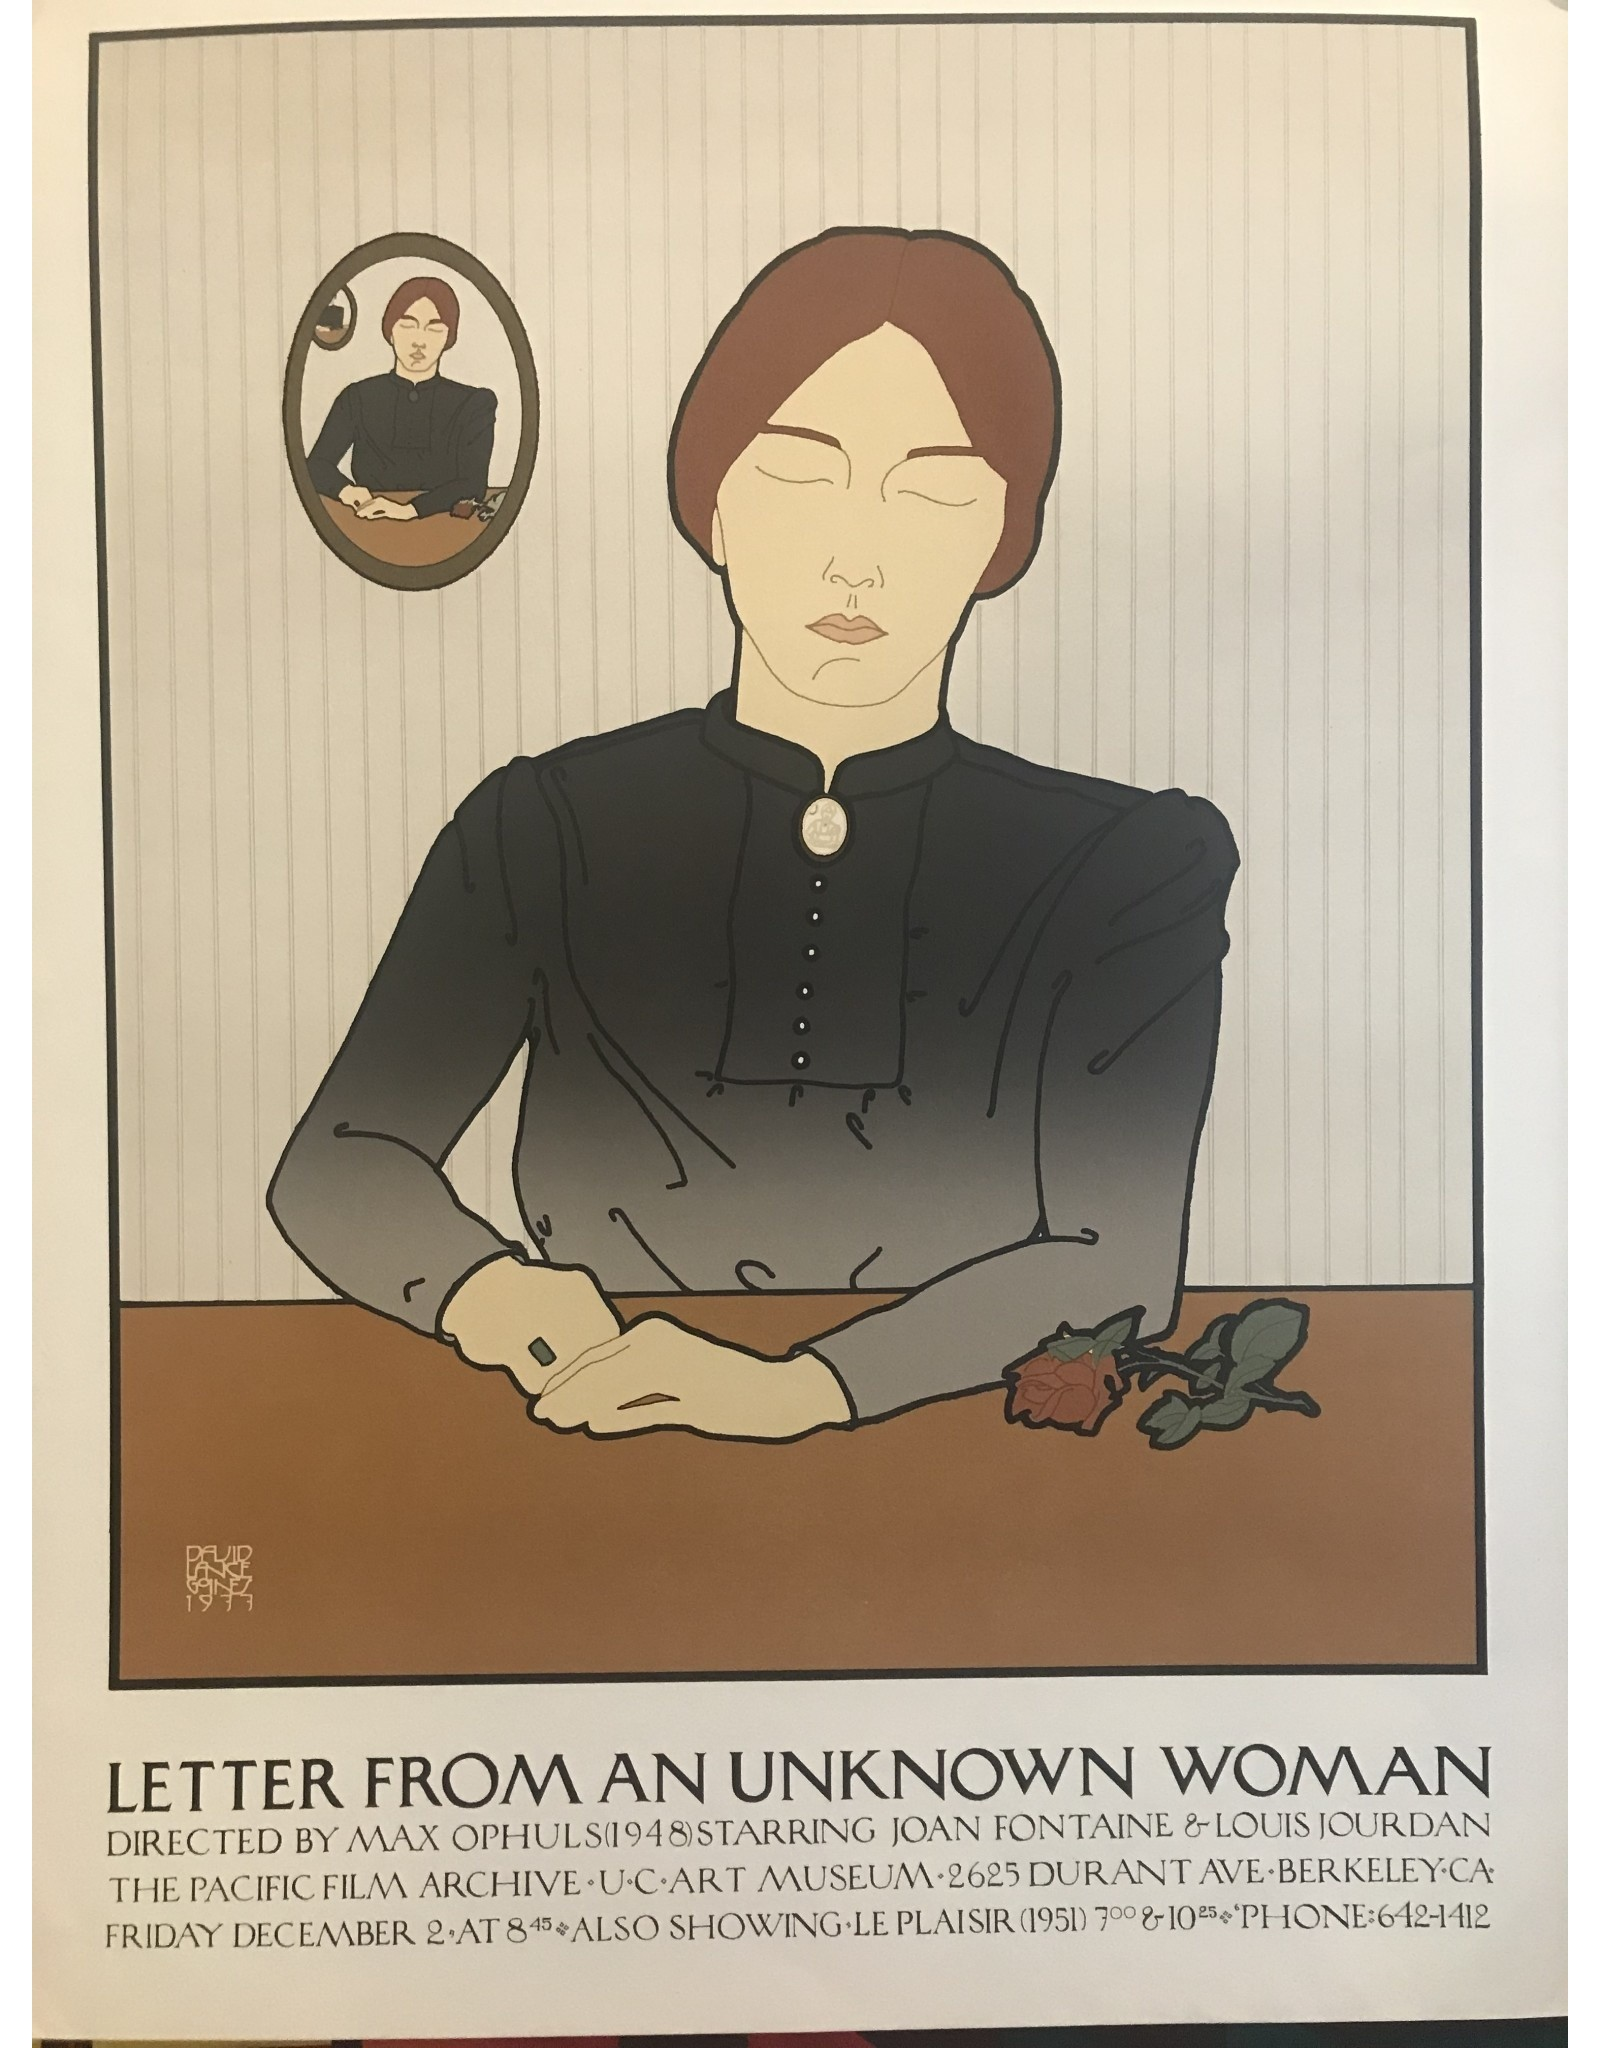 SPV Letter from an unknown women